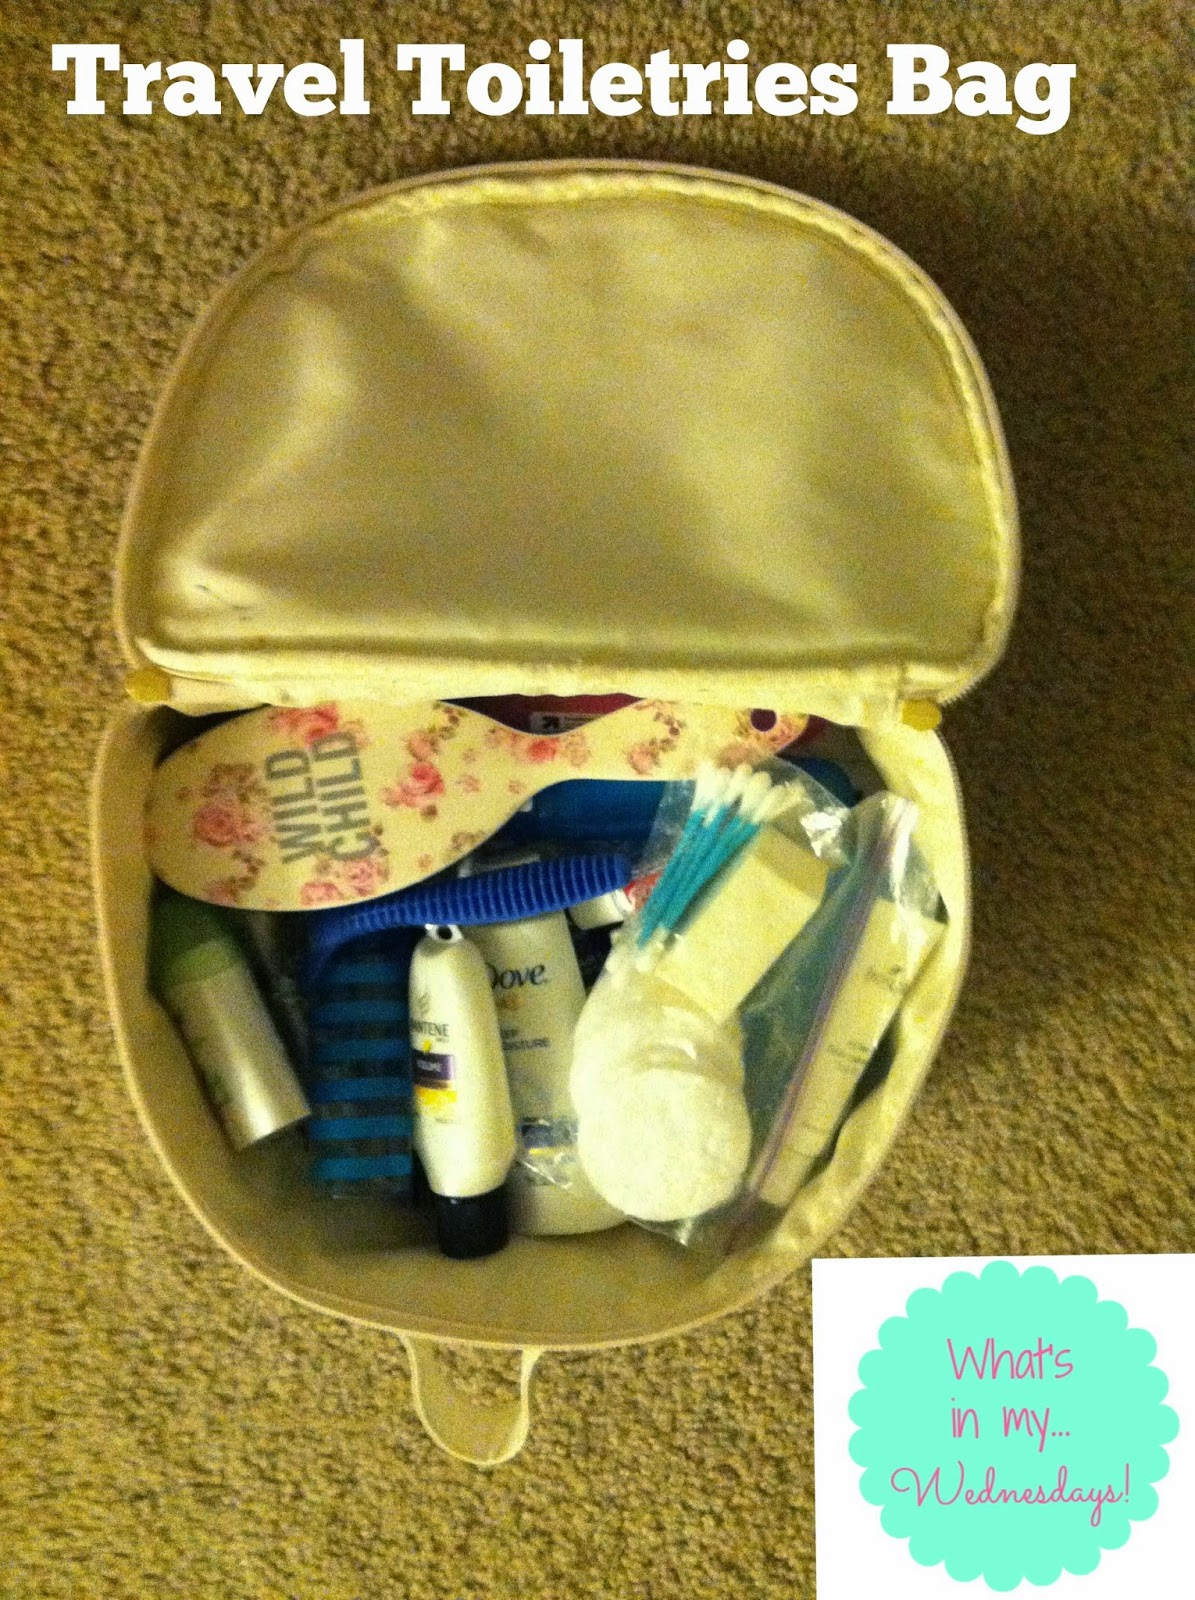 Gina S Agenda What S In My Travel Toiletries Bag